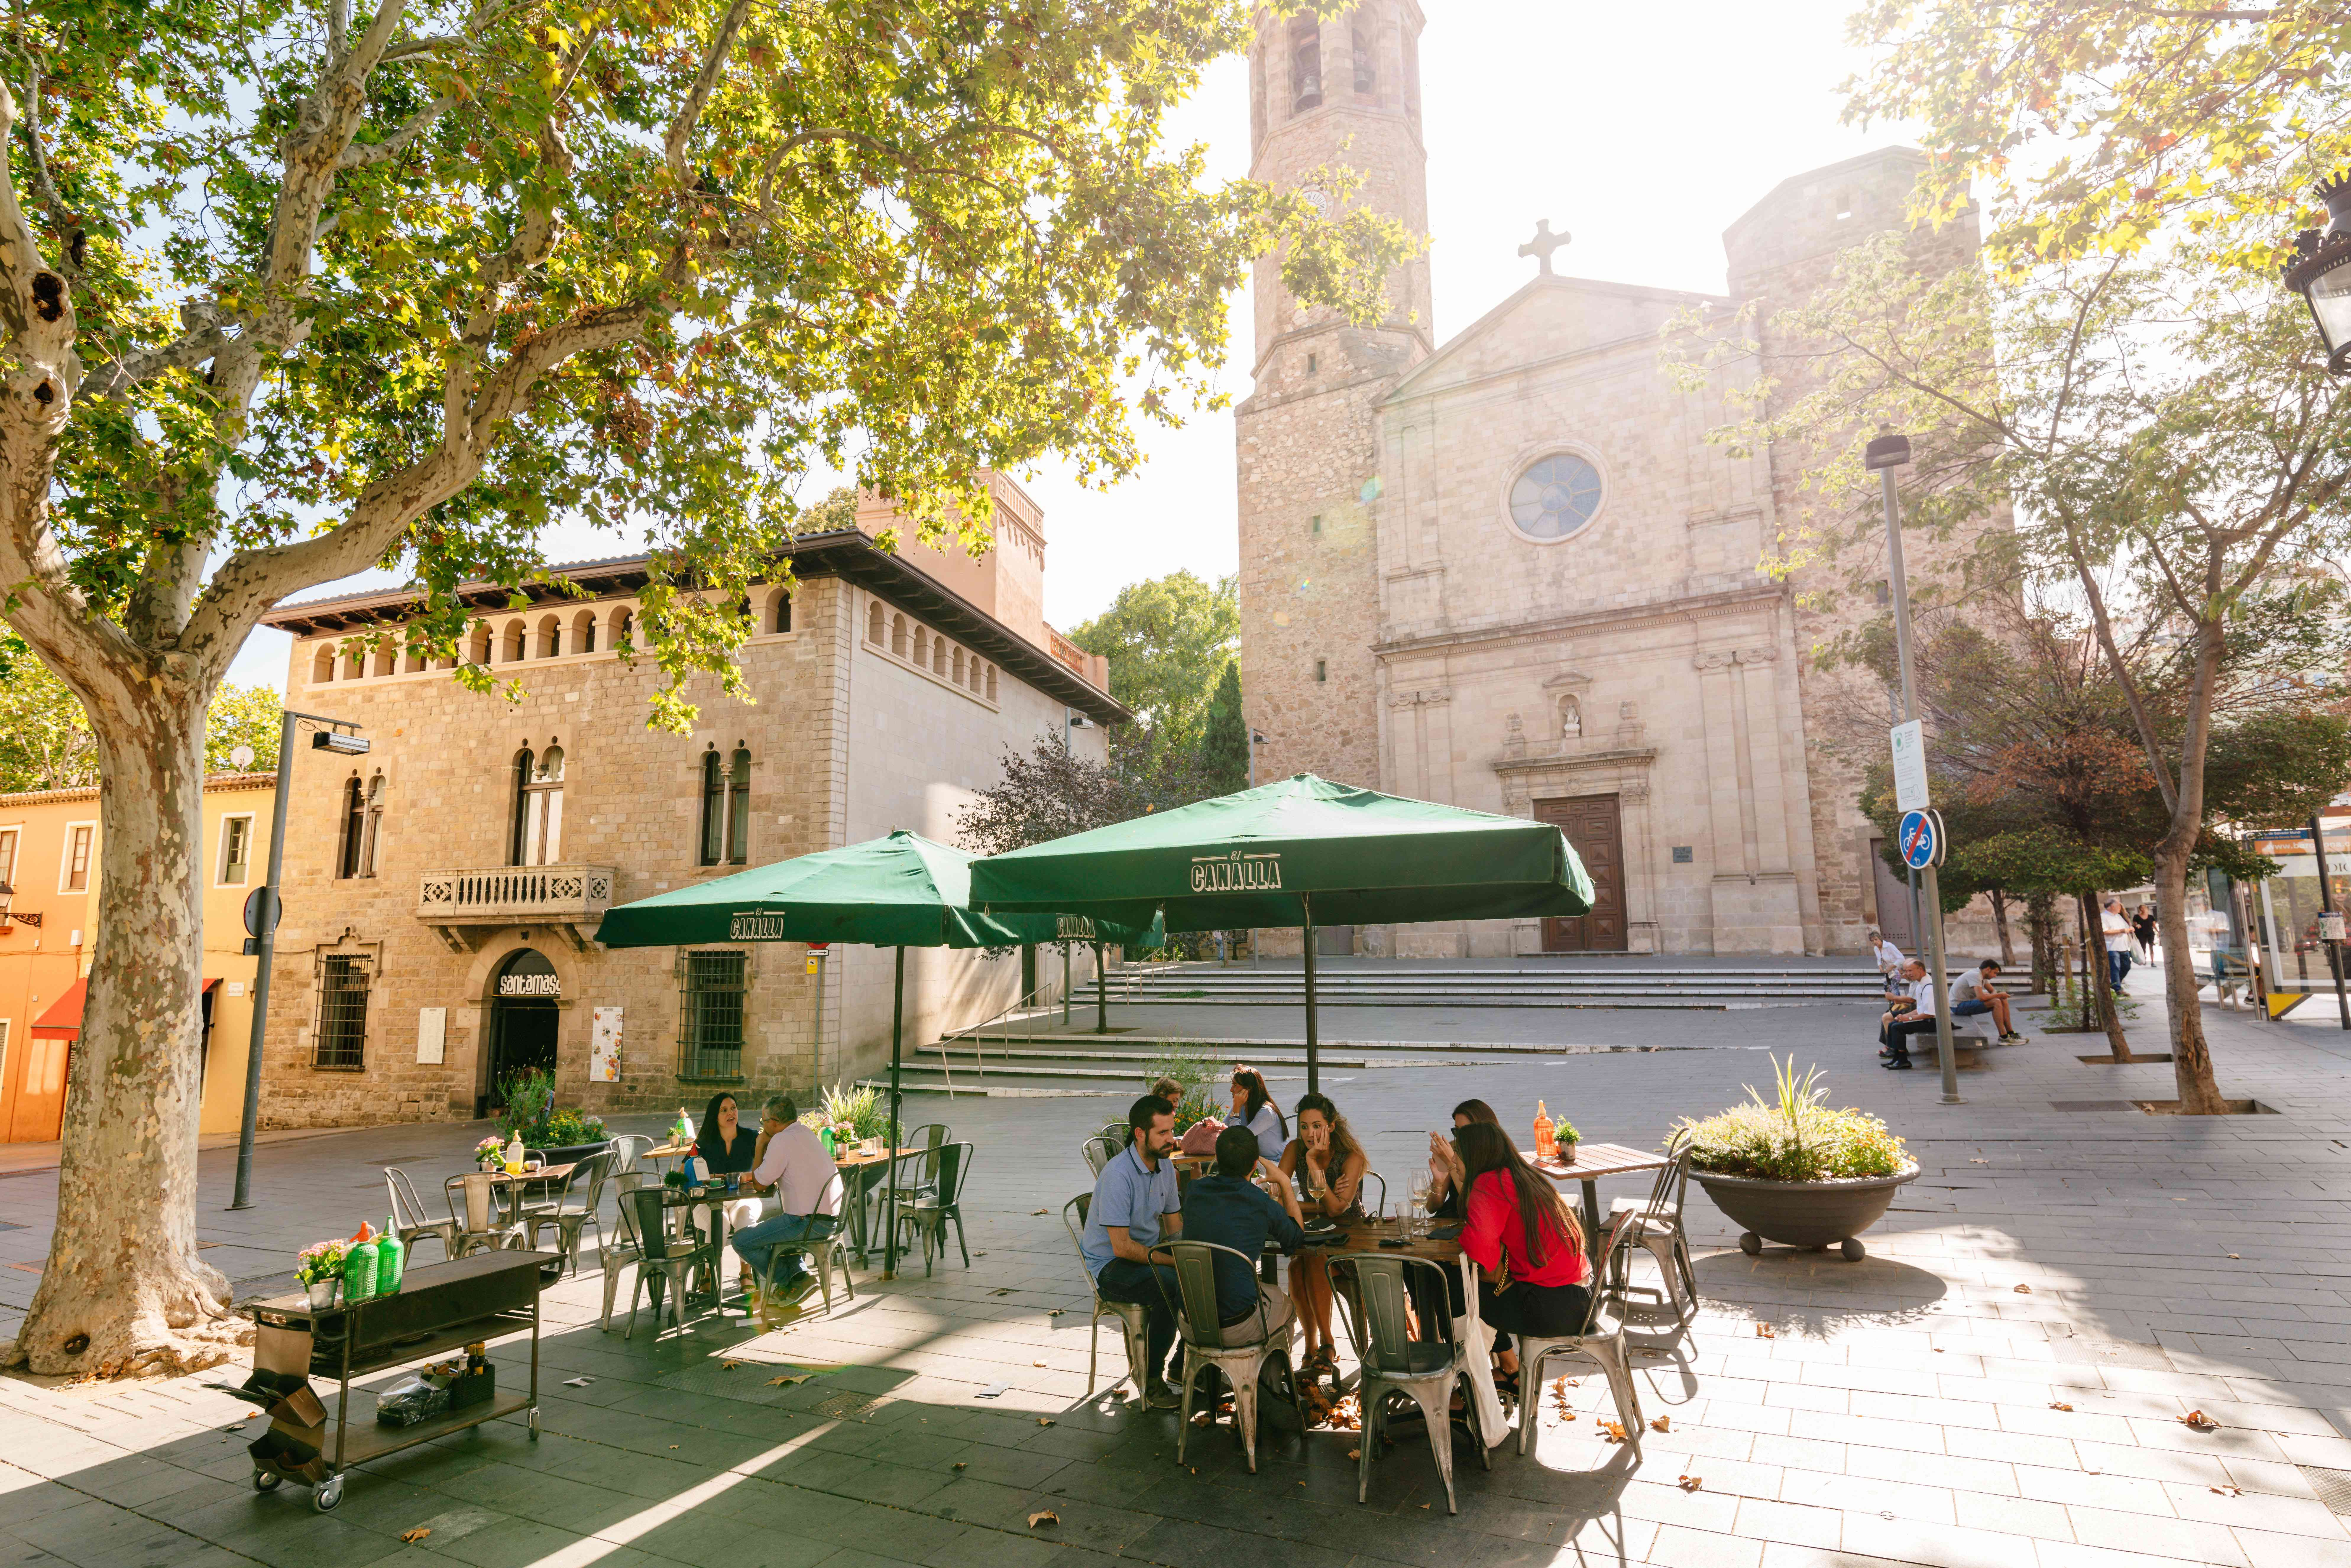 People sitting at an outdoor cafe in Barcelona